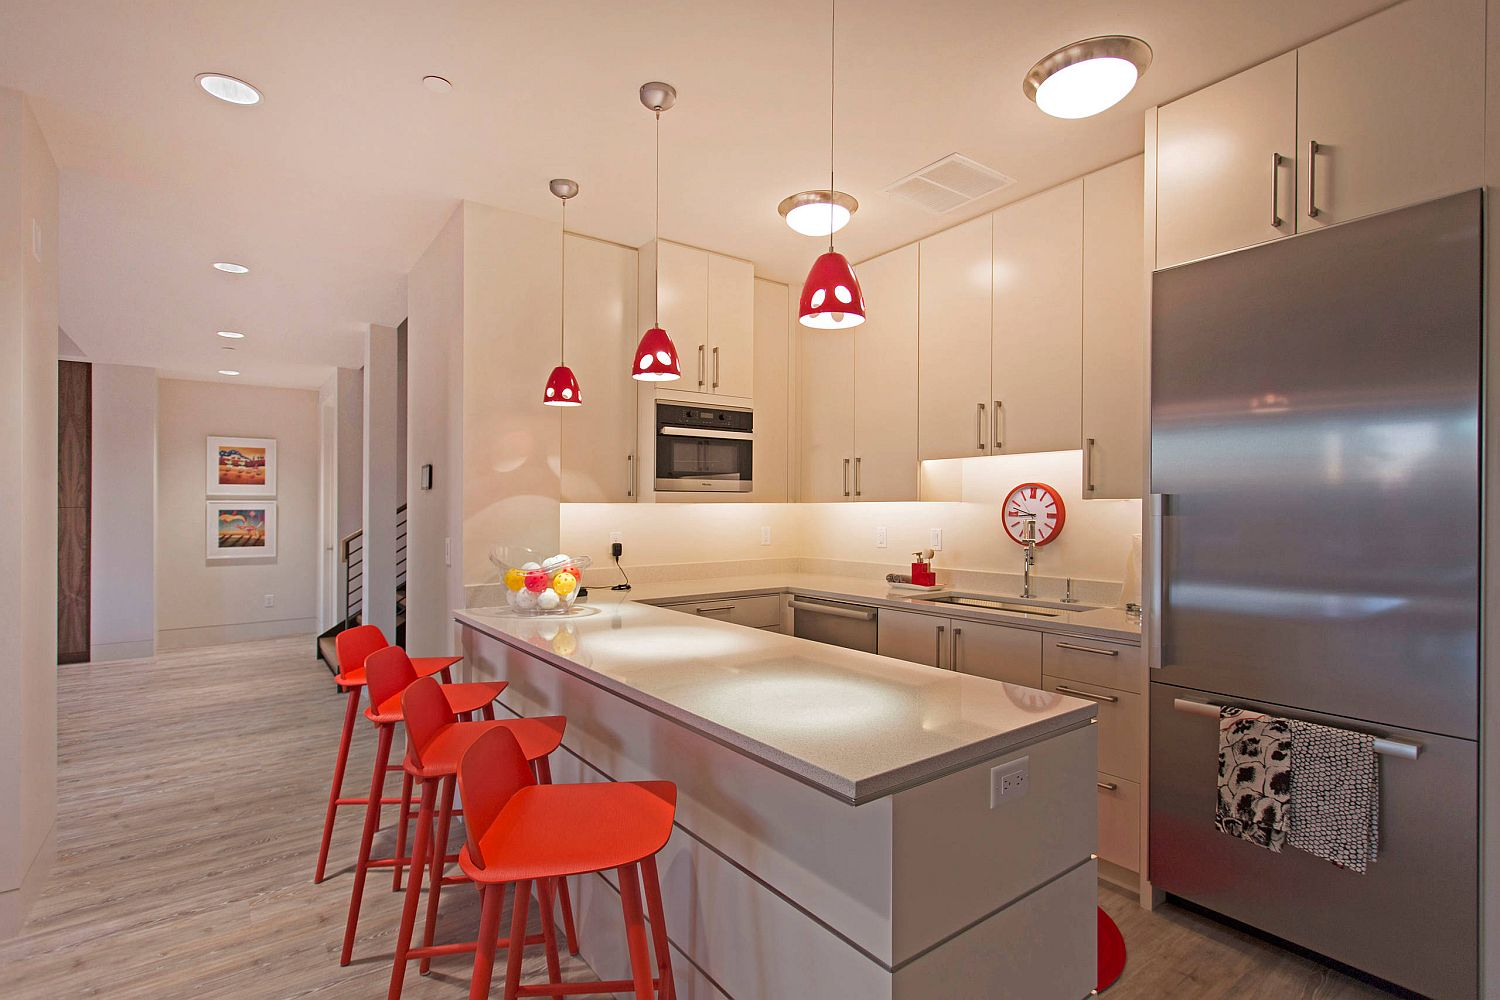 Snazzy red bar stools with geometric charm and pendant lights bring color to this ergonomic modern kitchen